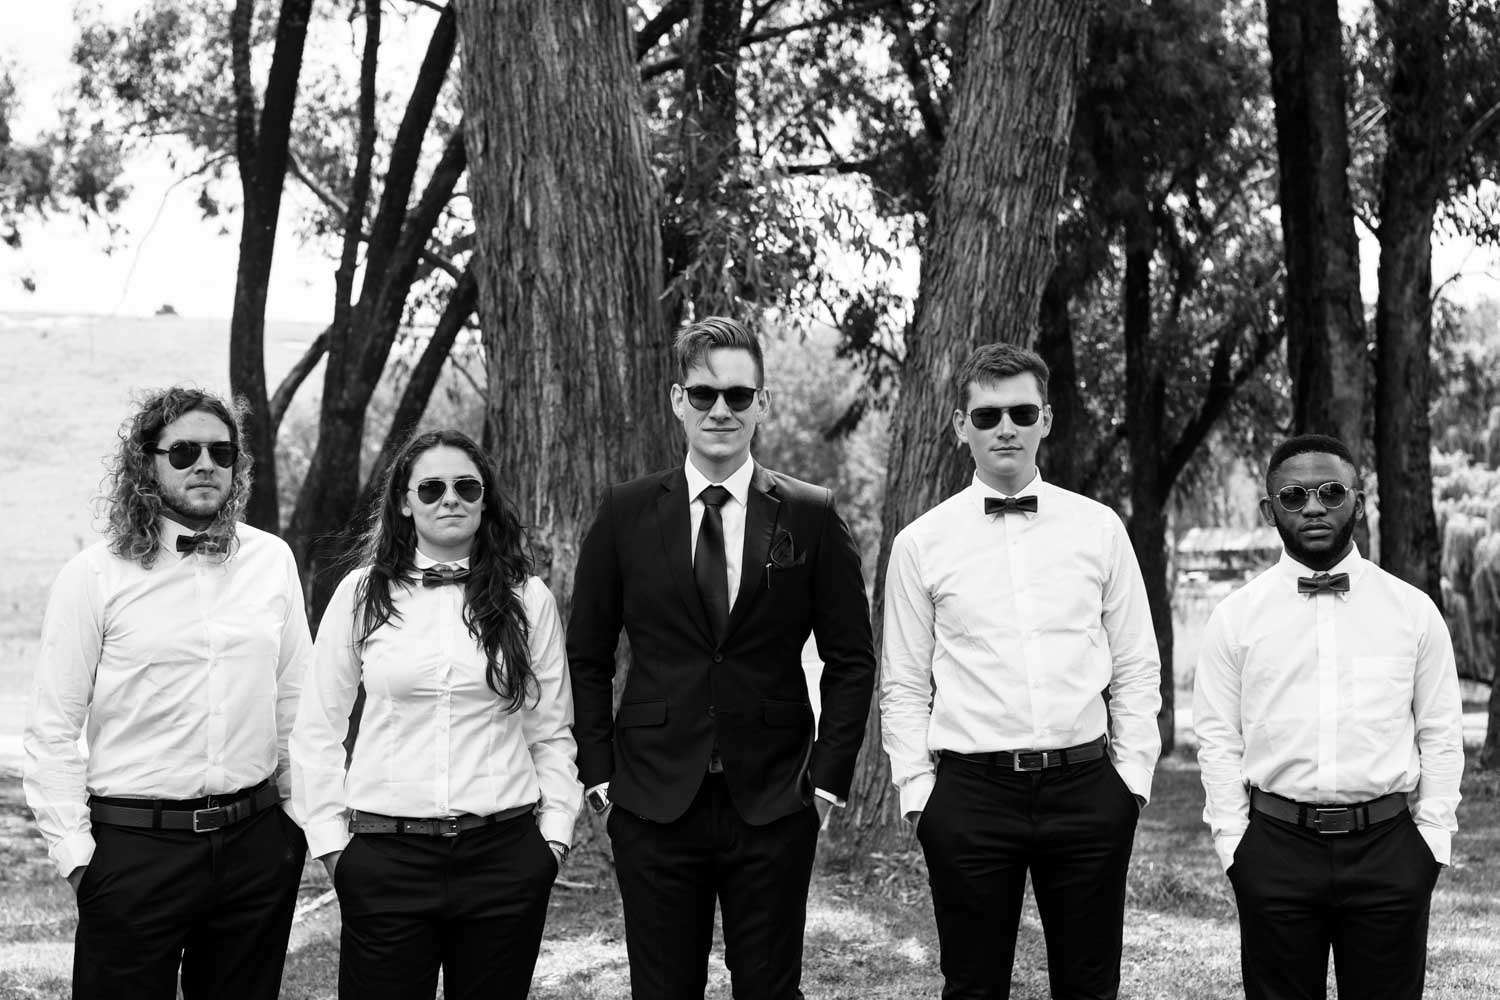 Cool Groom And Groomsmen Bridal Party Photo In Suits And Raybans